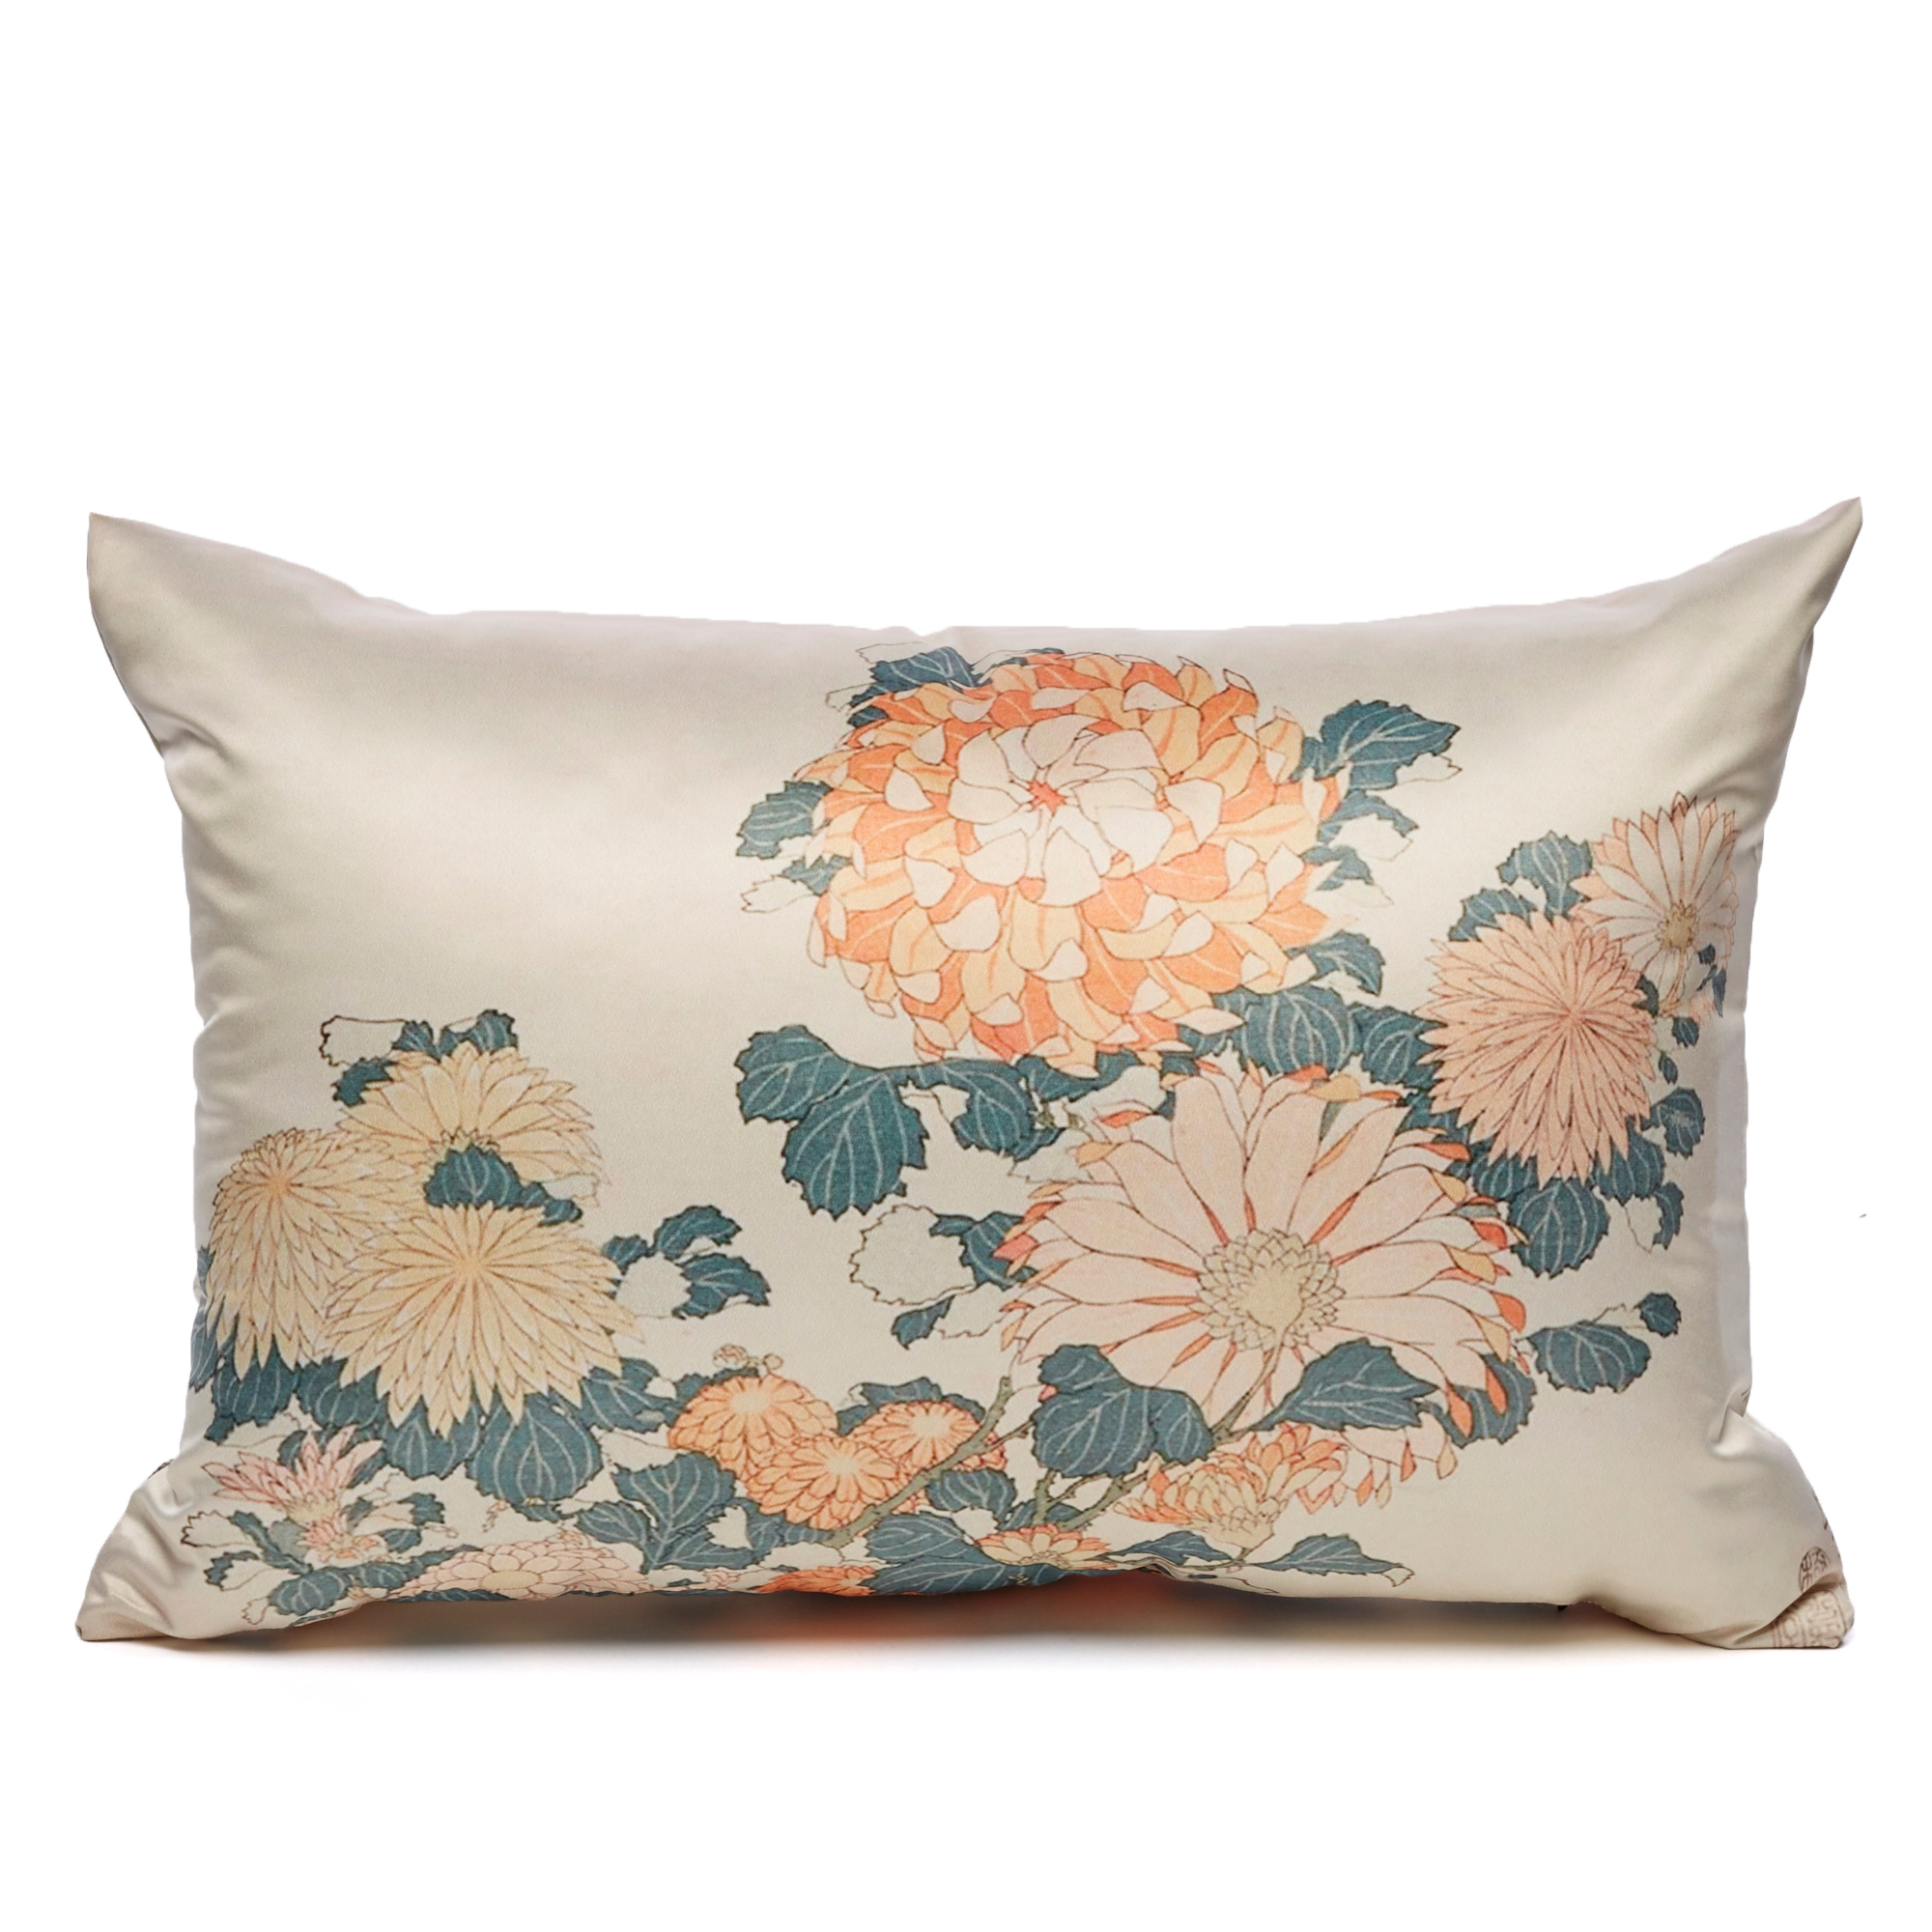 fall pillows up for to with cozy throw new fabrics is your says autumn pillow way change blog easiest fresh nandina some warm rustic the like nothing seasons home